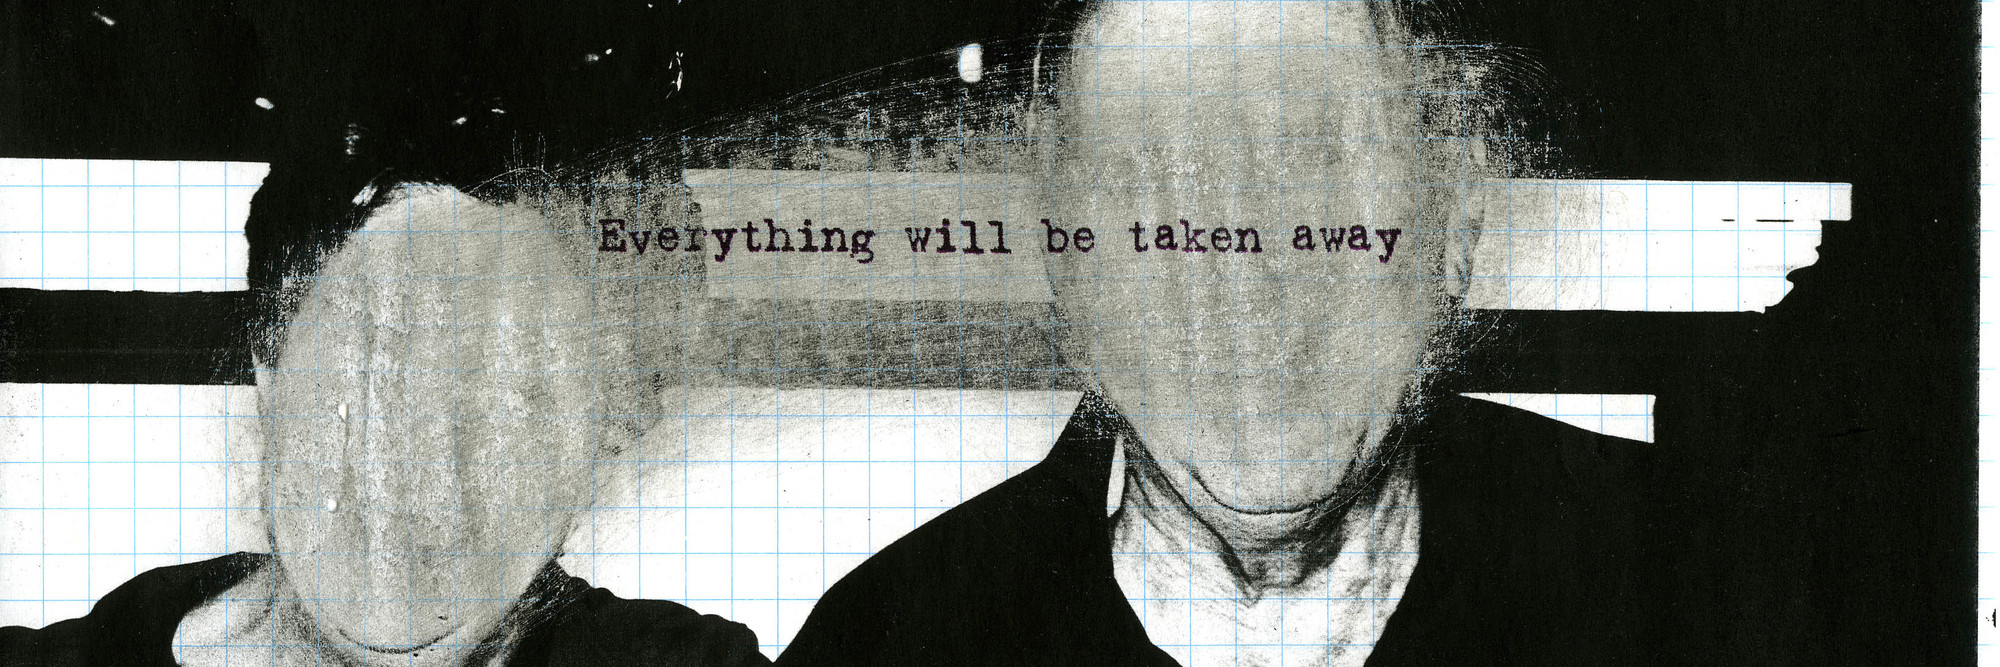 "Adrian Piper. Everything #2.8. 2003. Photocopied photograph on graph paper, sanded with sandpaper, overprinted with inkjet text, 8.5"" x 11"" (21.6 x 27.9 cm). Private Collection. © Adrian Piper Research Archive Foundation Berlin"